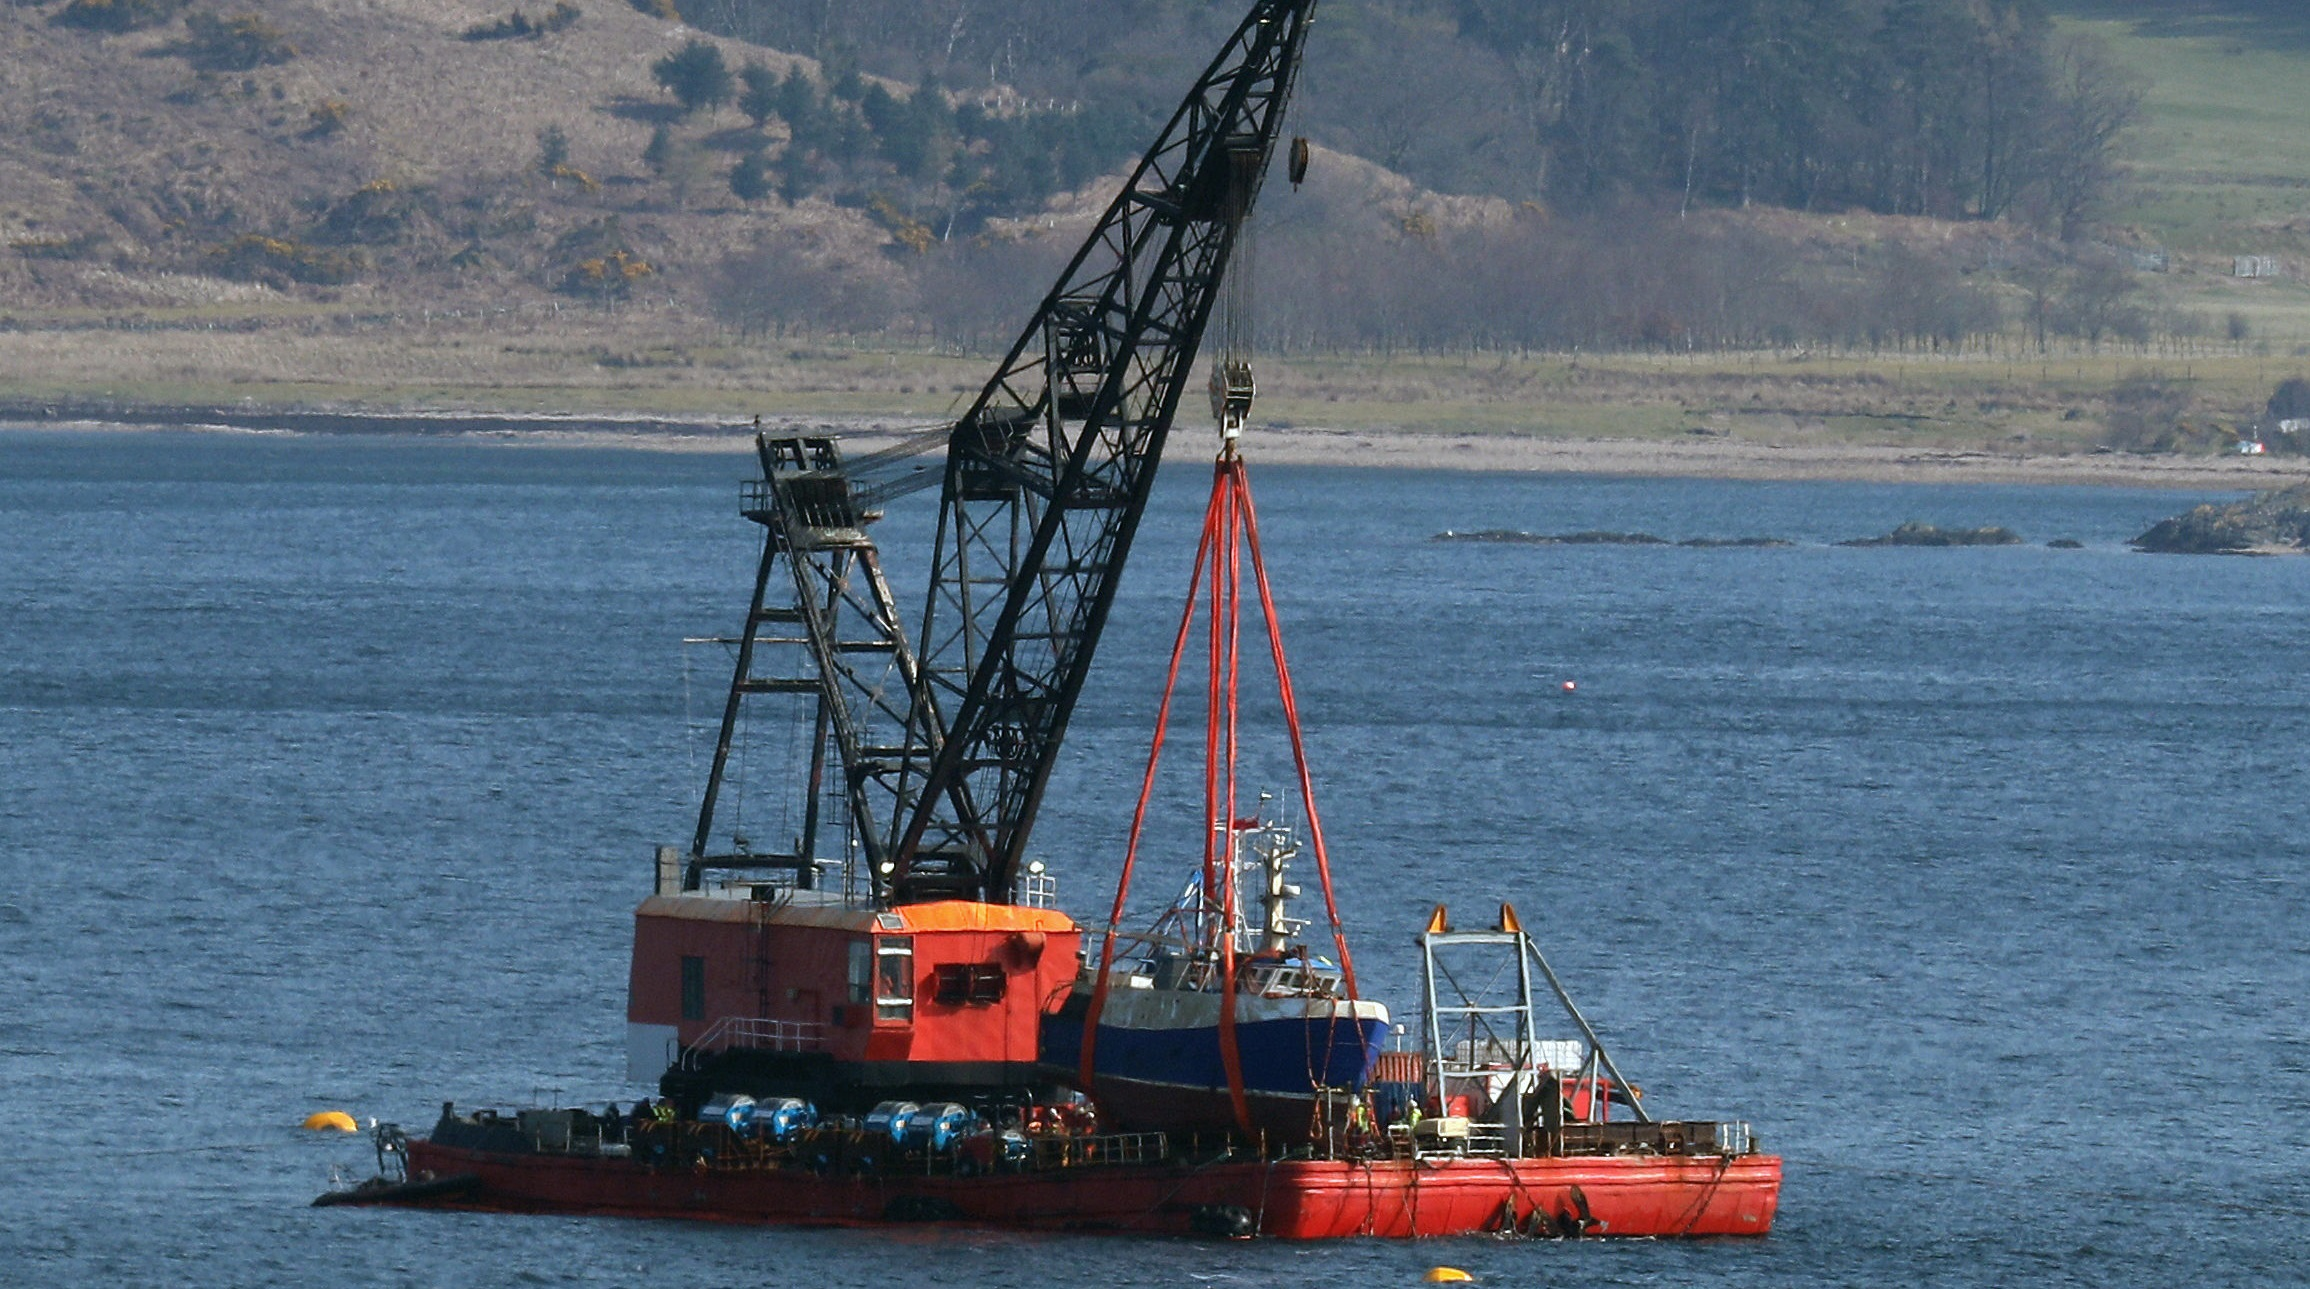 The Nancy Glen was recovered from Loch Fyne